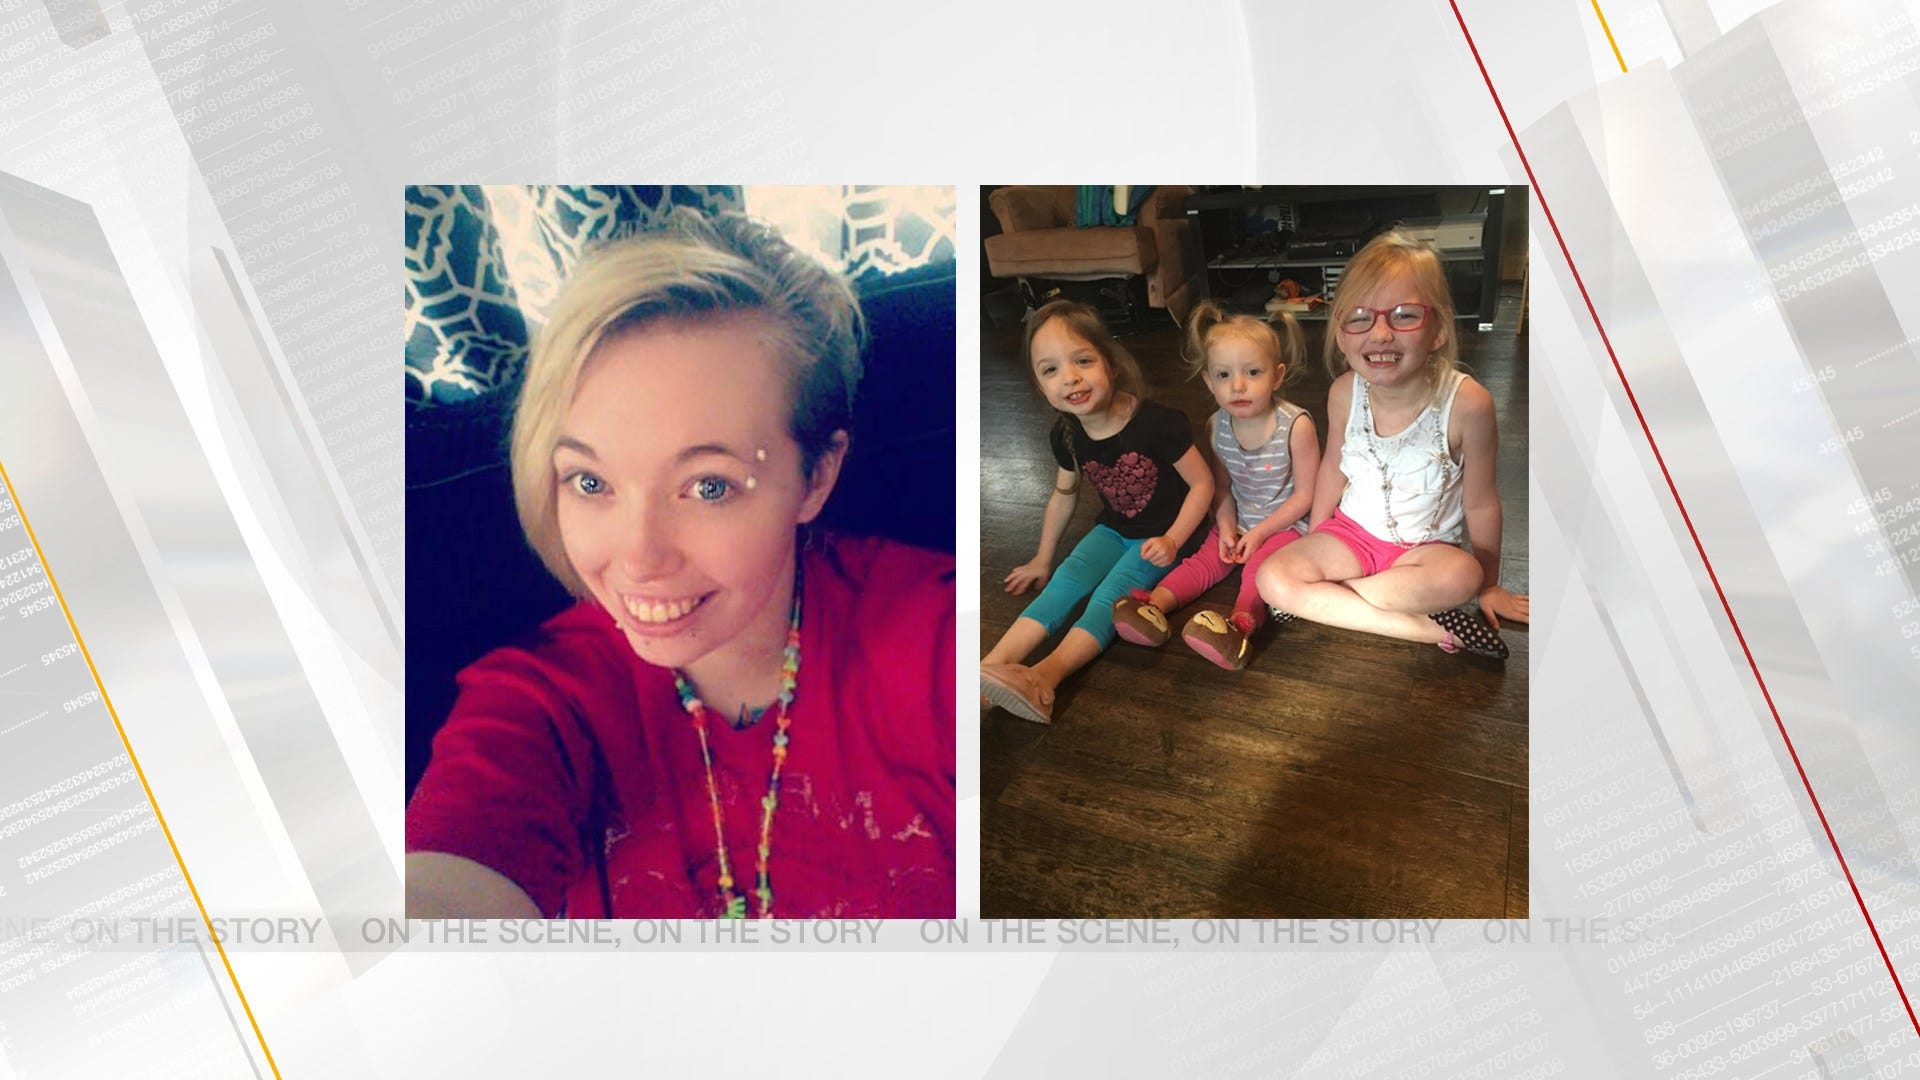 Chickasha Police Looking For New Leads To Find Missing Mom, Kids